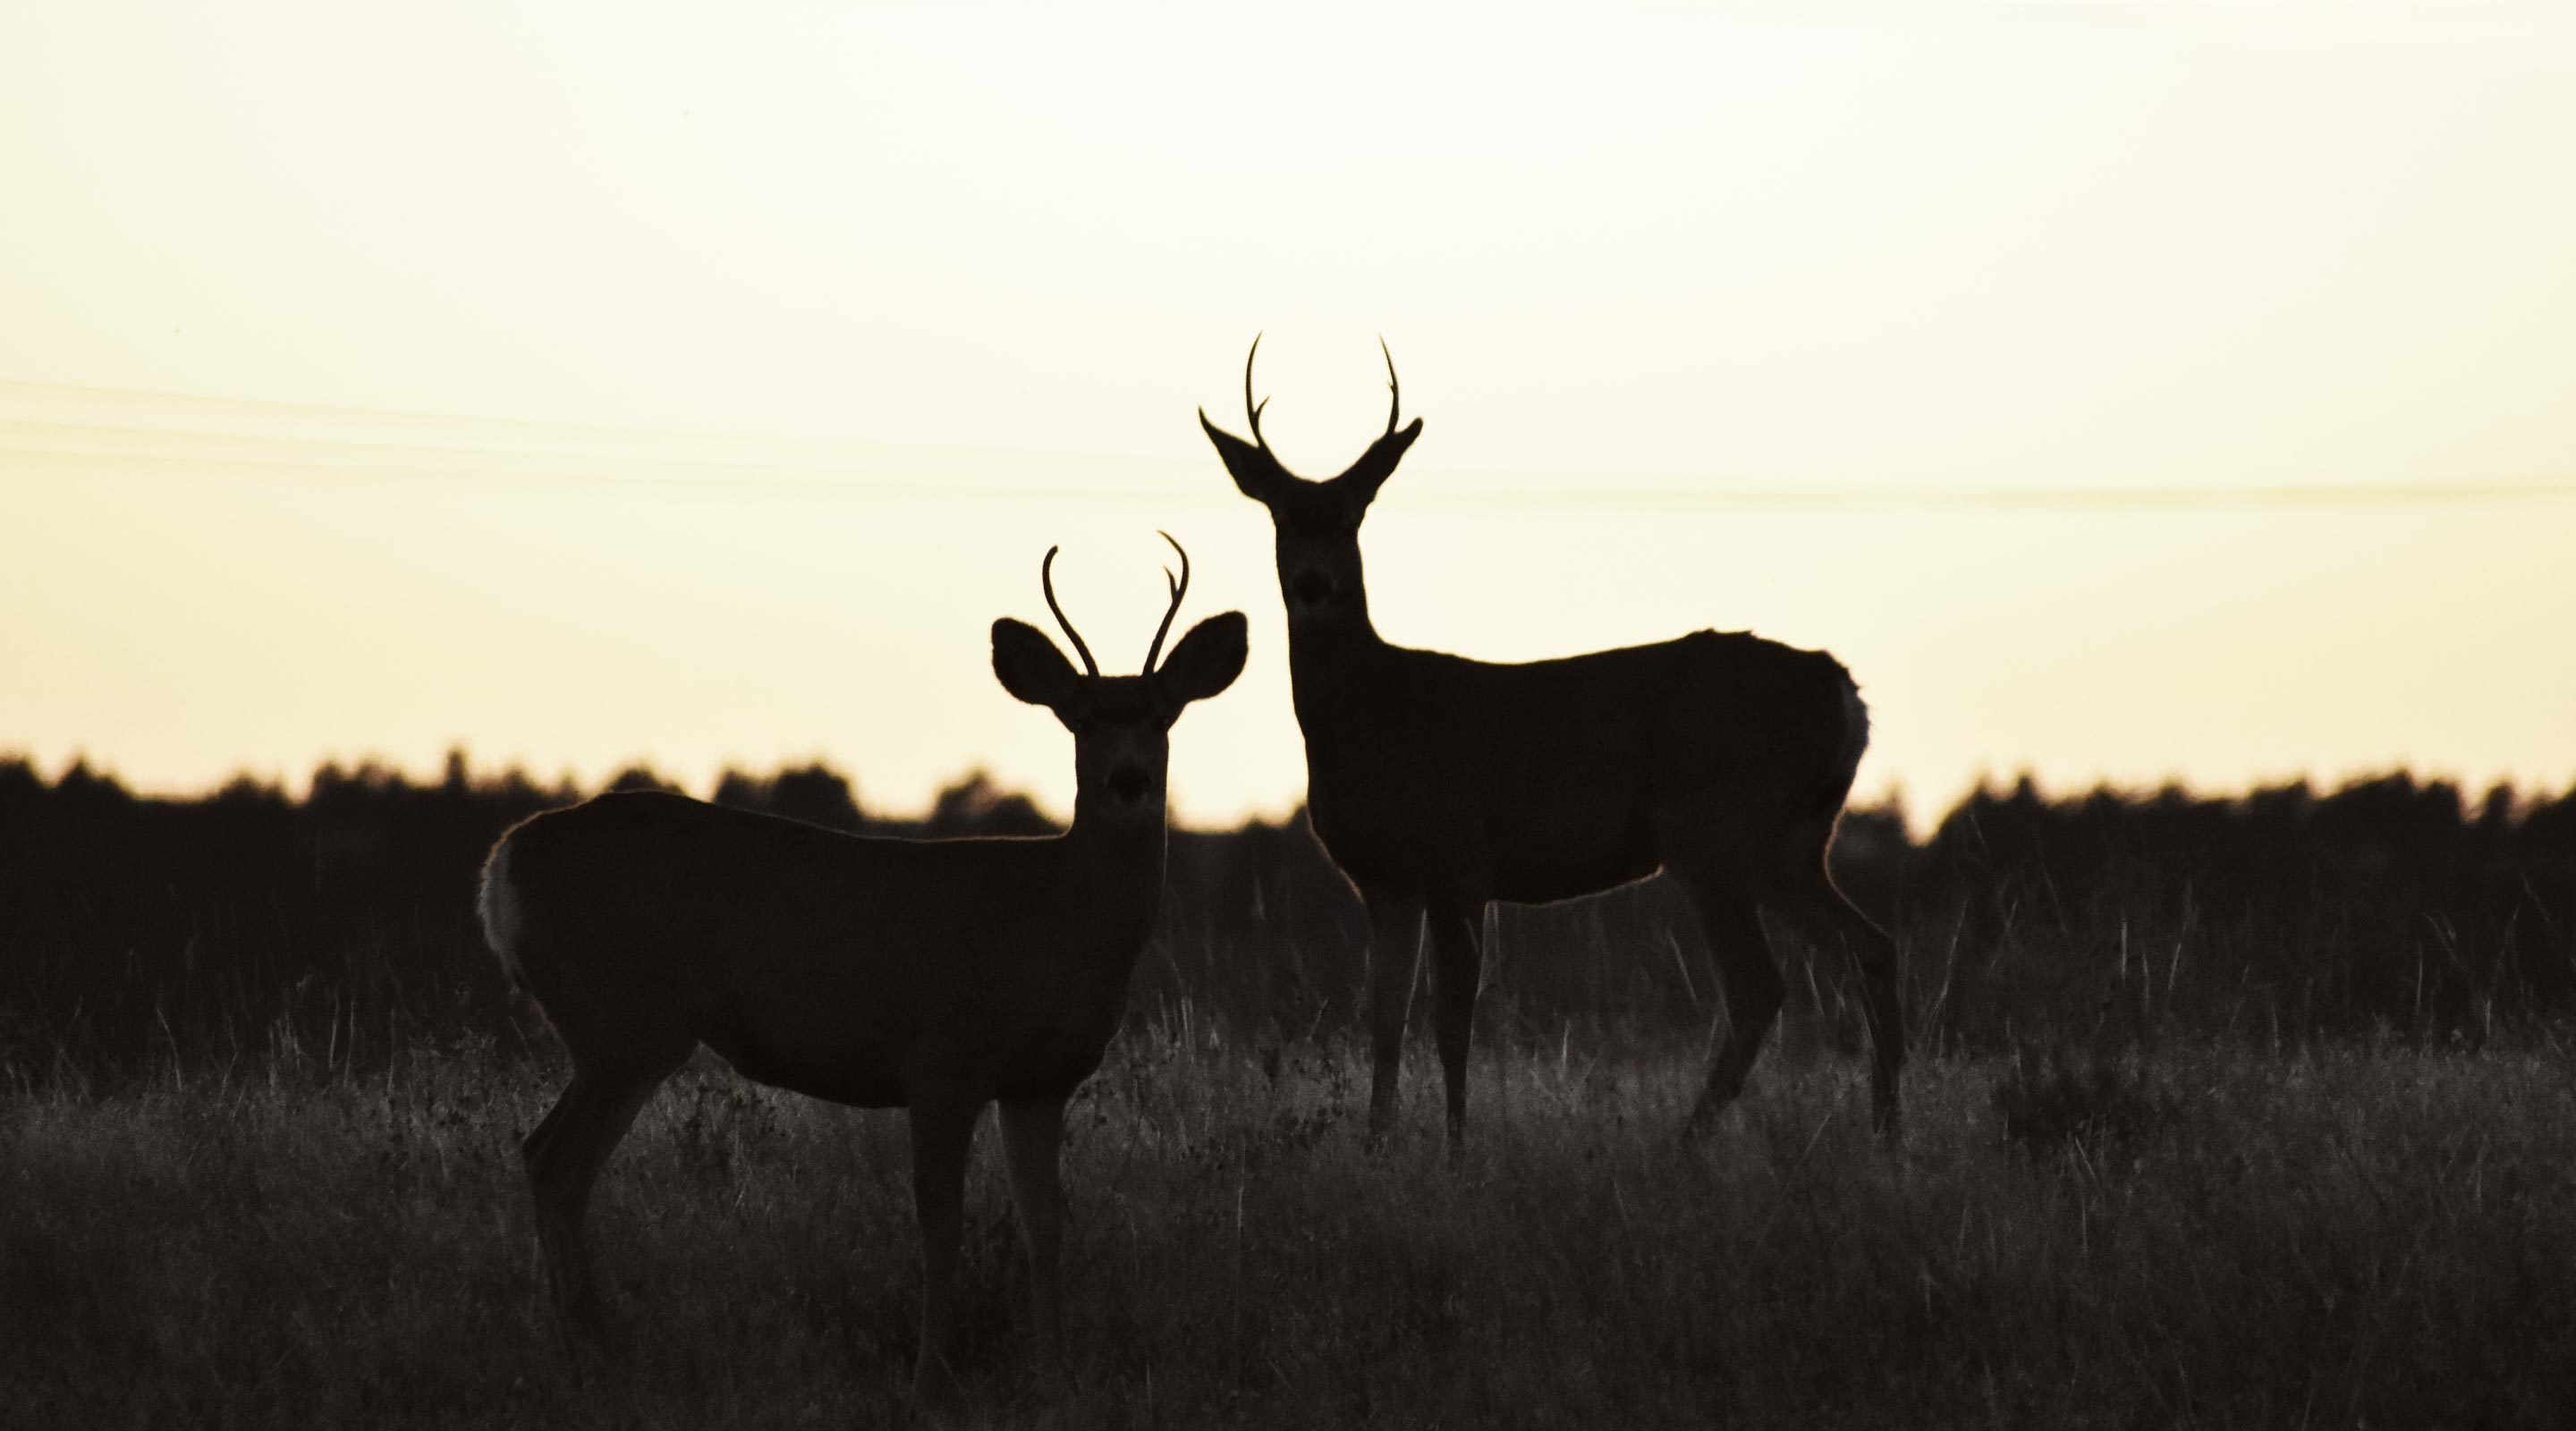 Whitetail deer at sunset